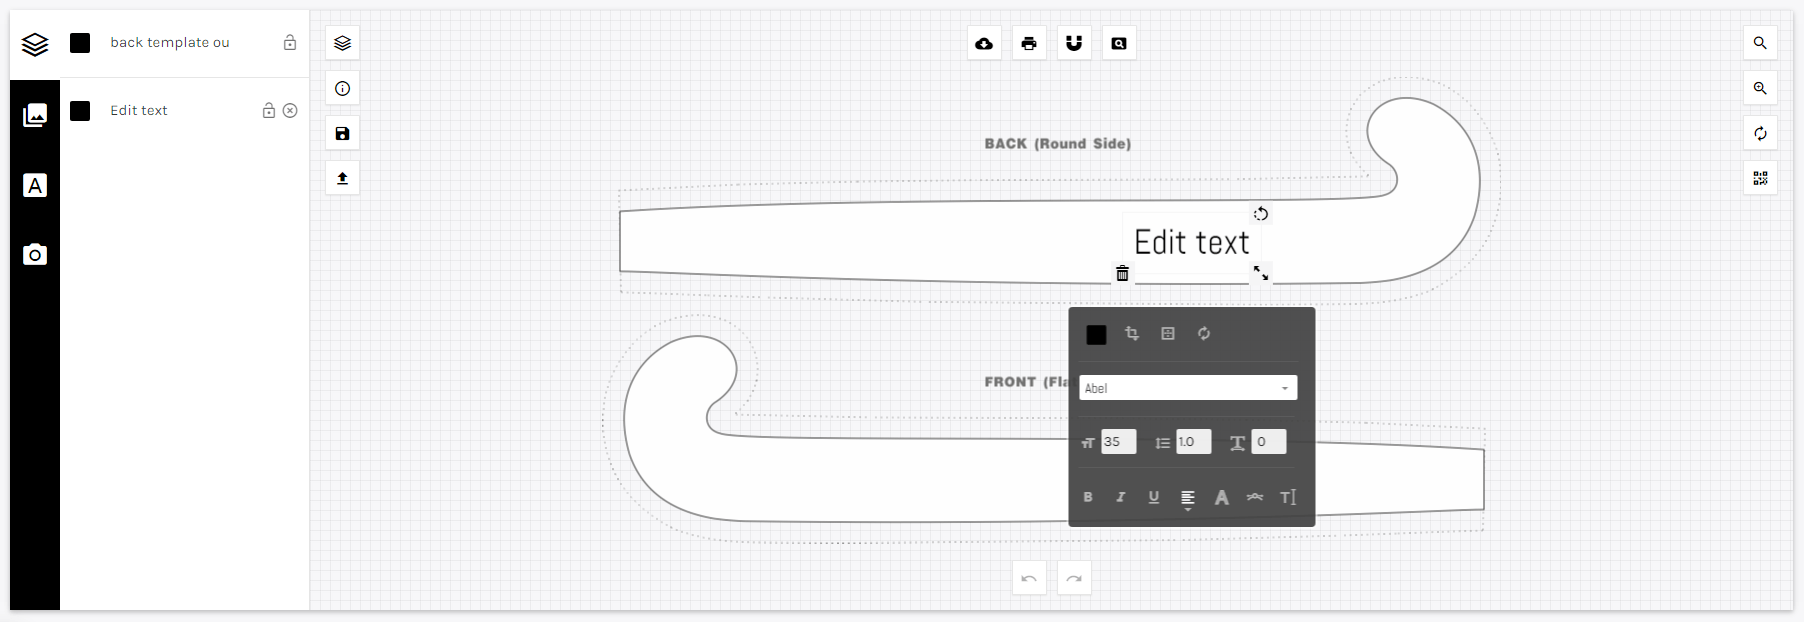 Getting started with the design tool